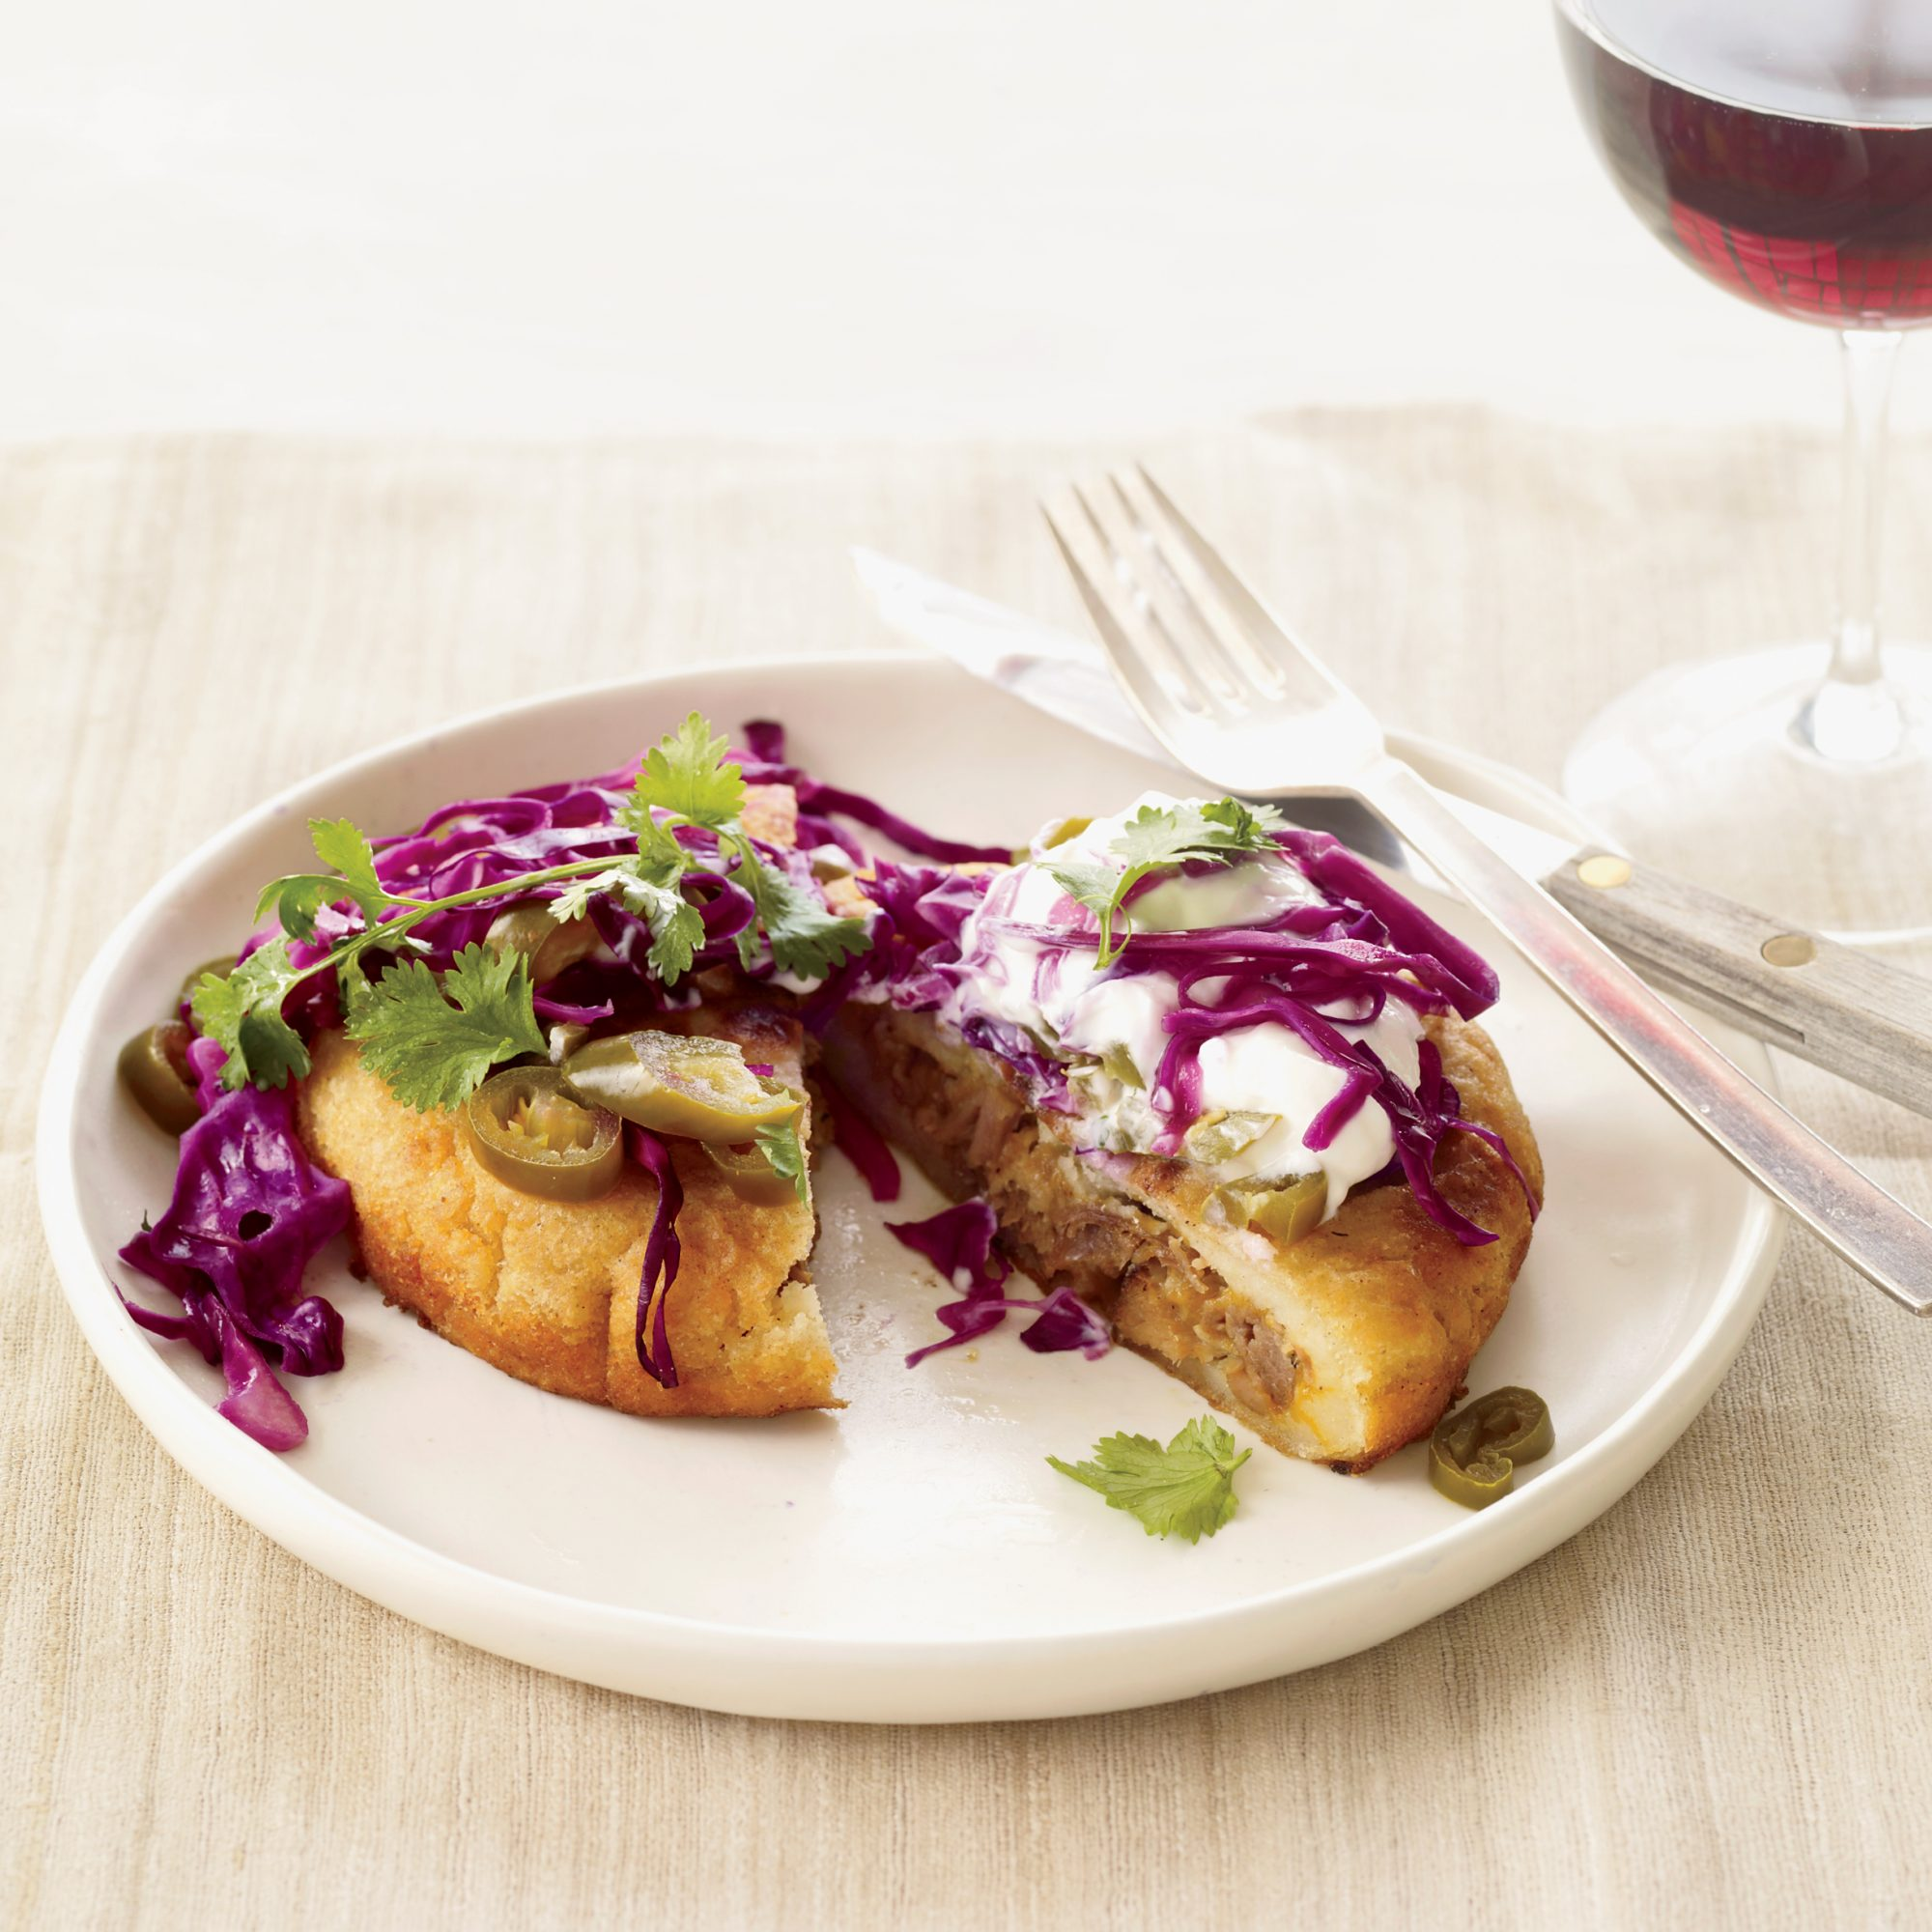 images-sys-201201-r-pork-and-cheese-arepas-with-tangy-cabbage-slaw.jpg